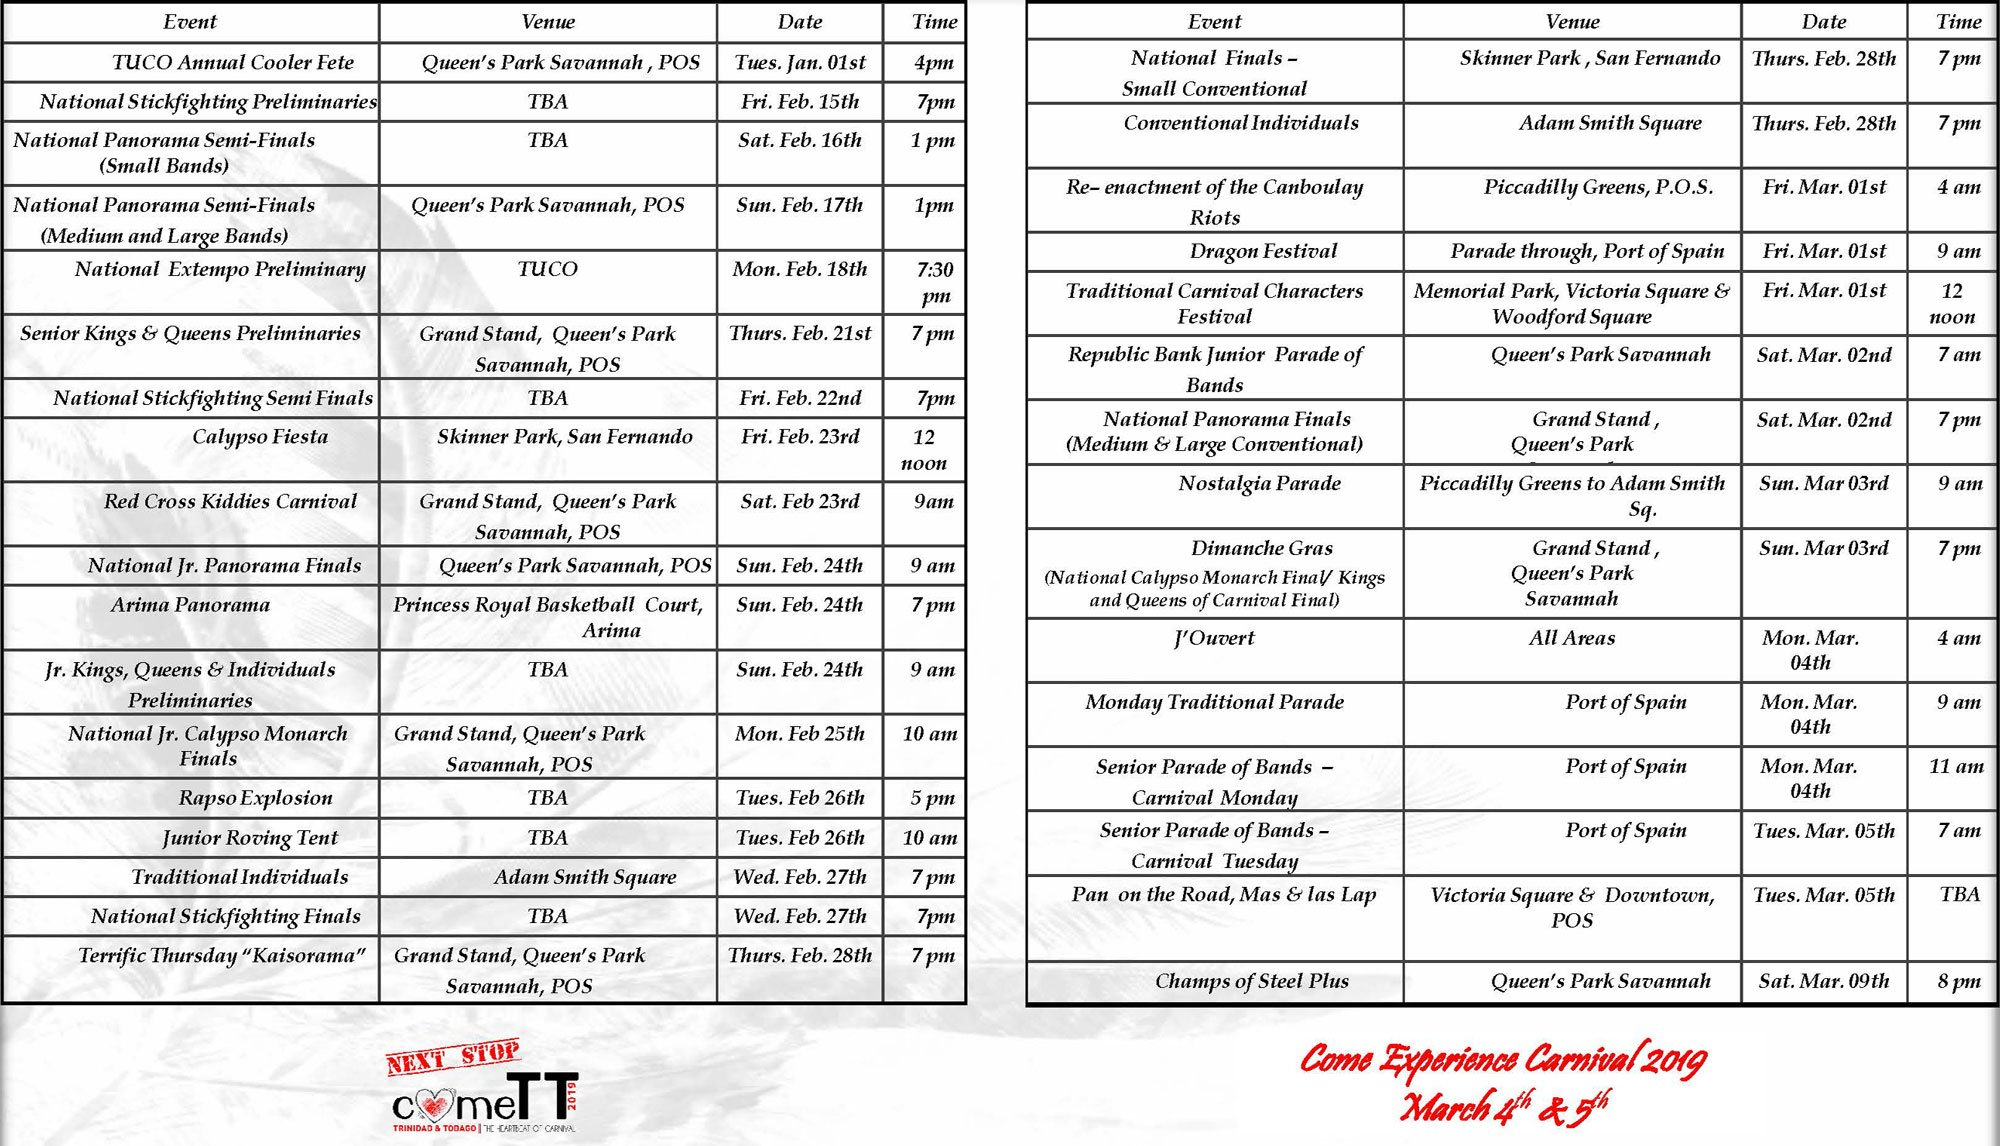 Schedule Of Events For Carnival 2019 T&t Calendar 2019